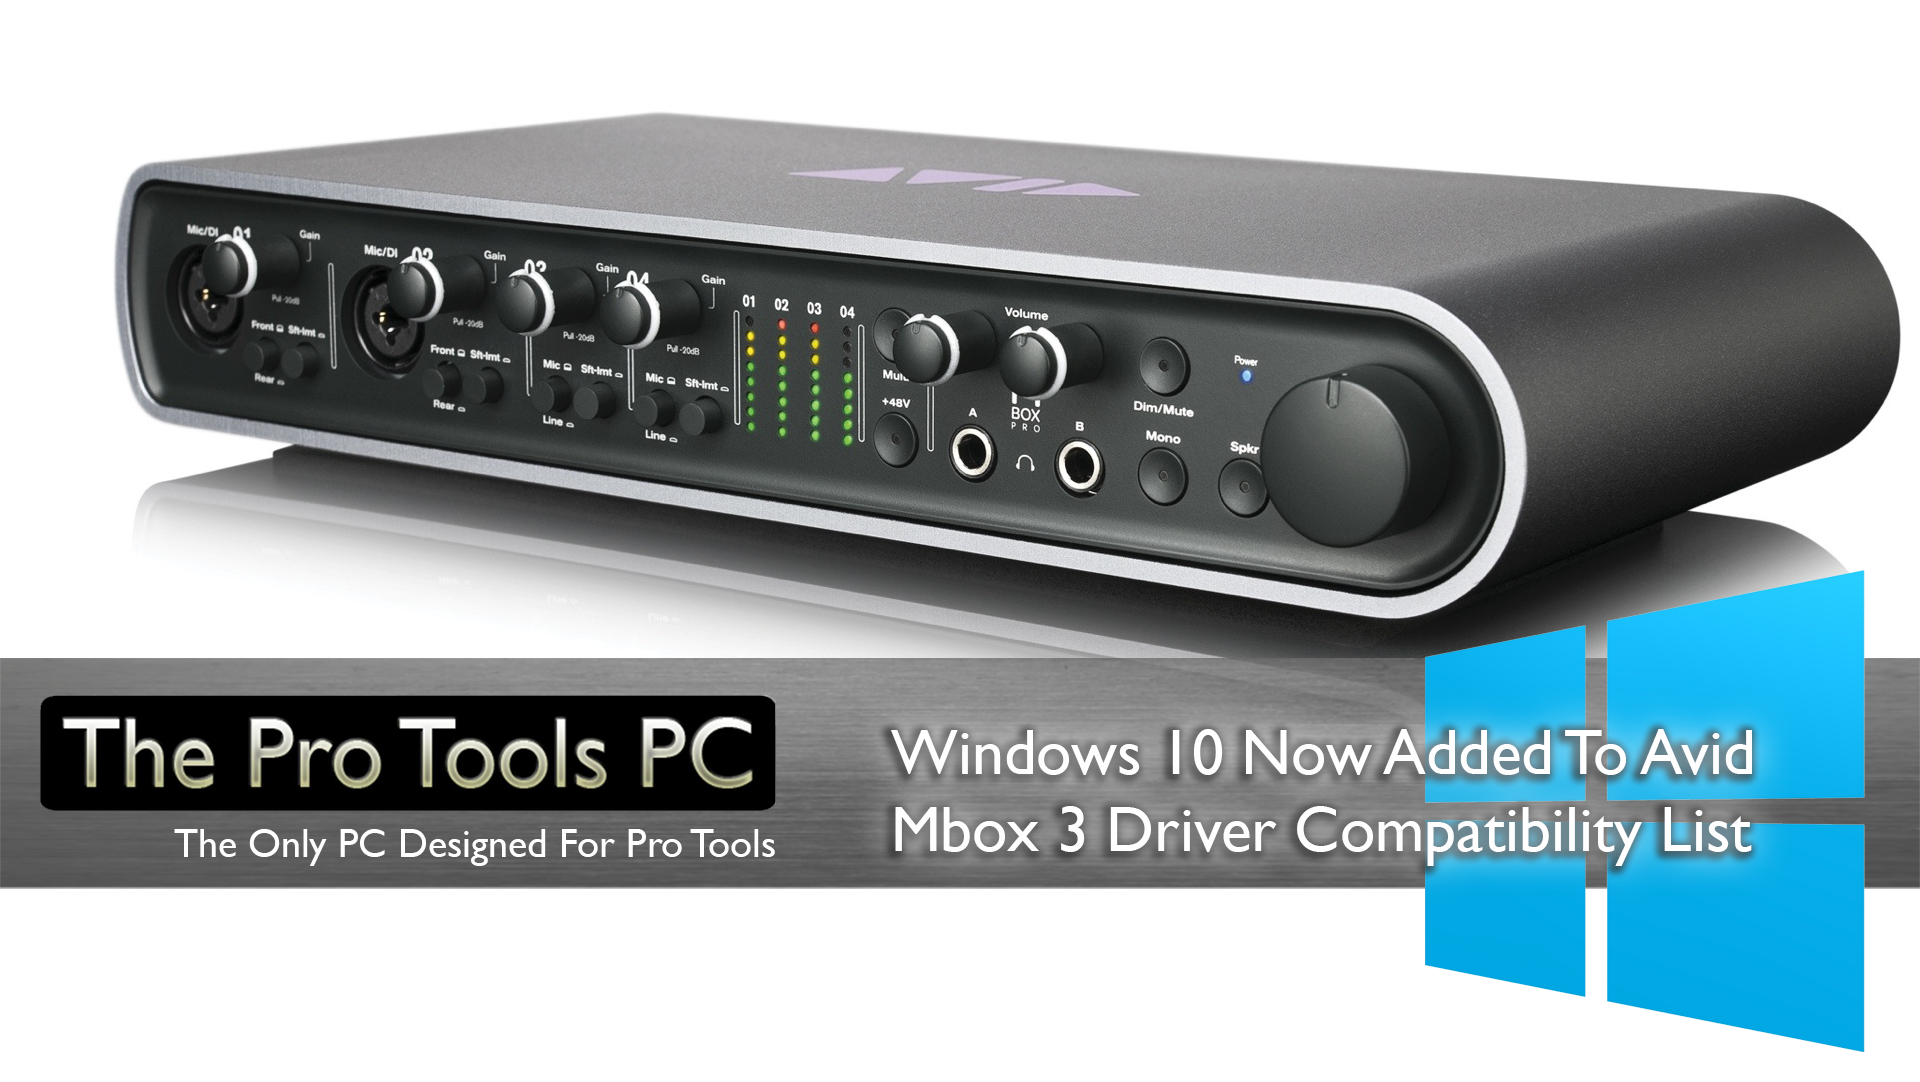 Avid Mbox Windows 10